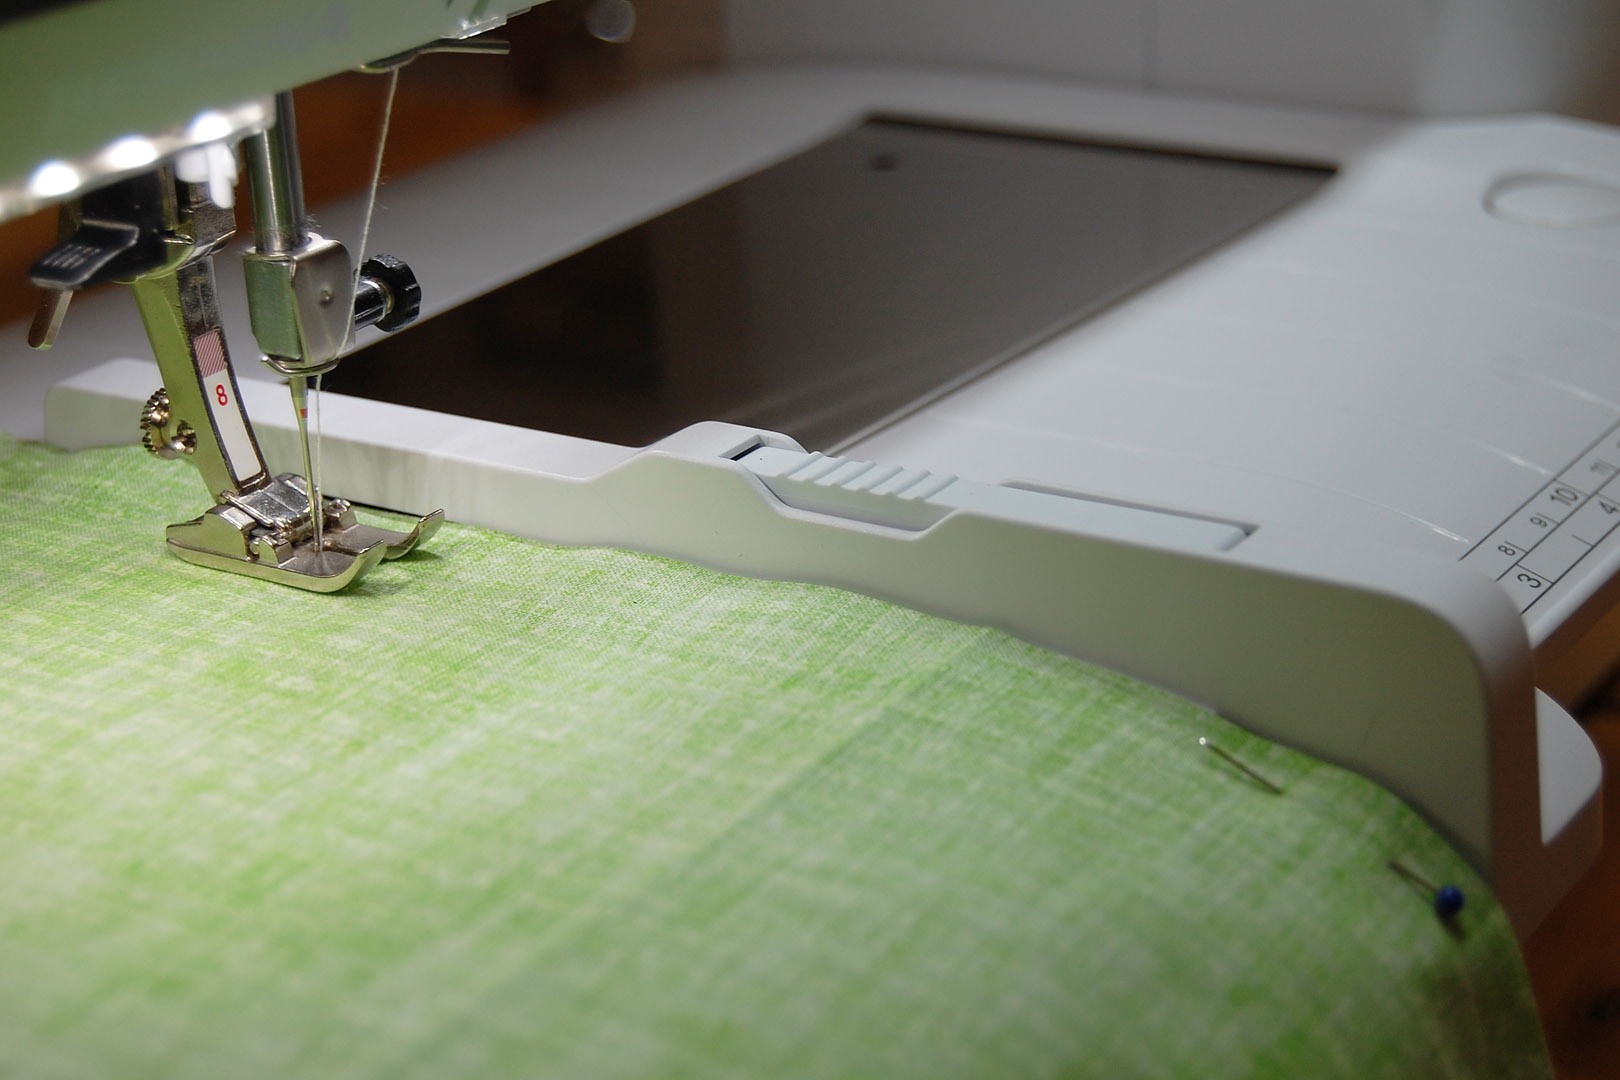 Tips for sewing straight seams